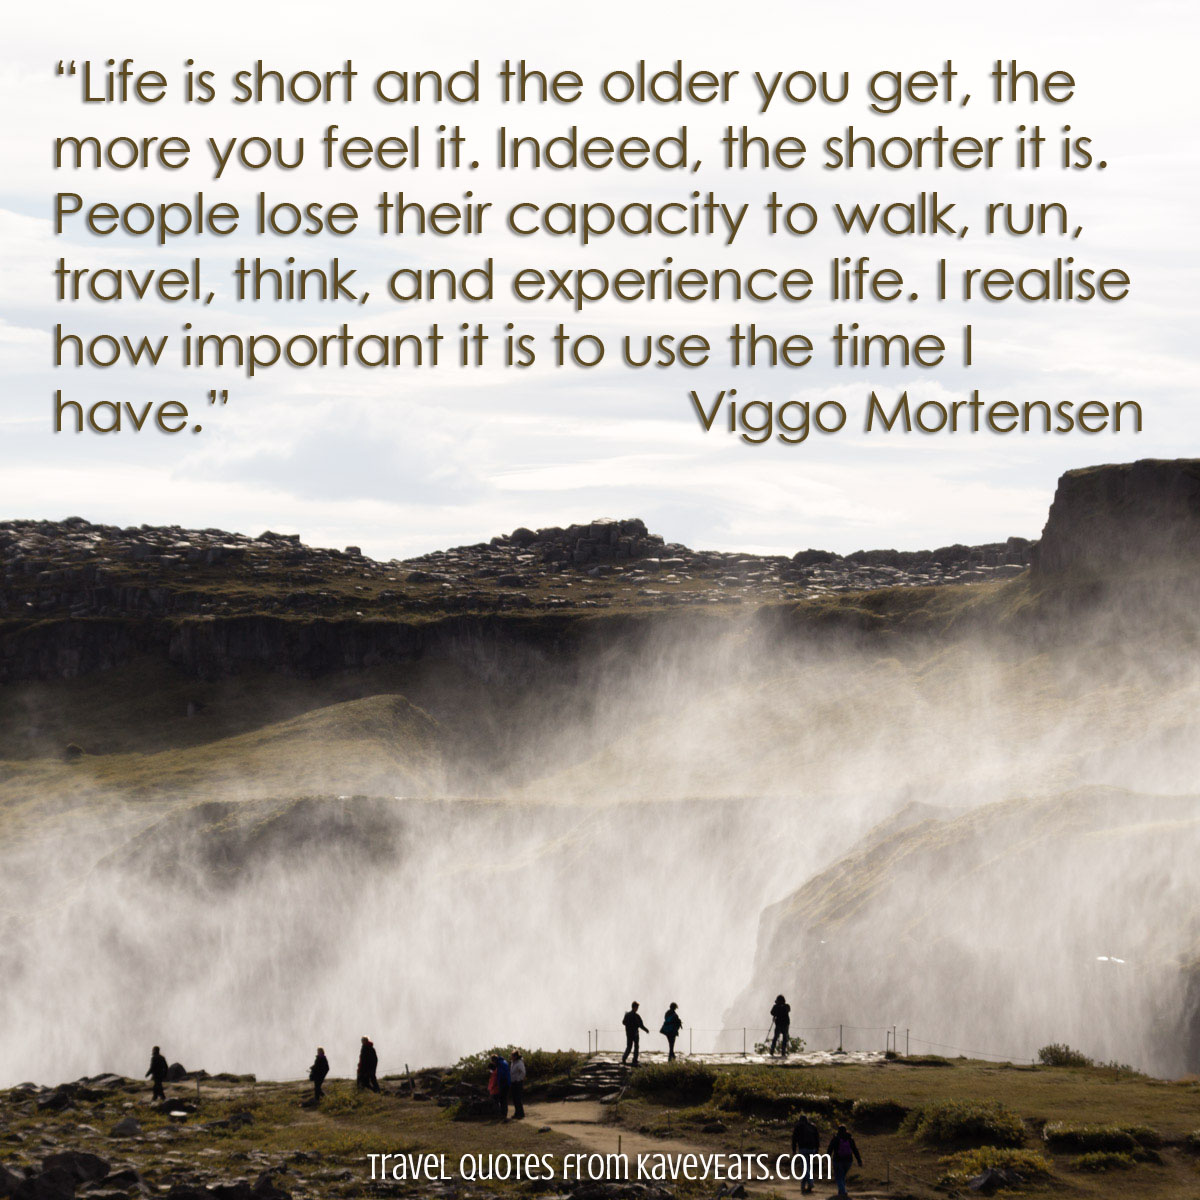 """Life is short and the older you get, the more you feel it. Indeed, the shorter it is. People lose their capacity to walk, run, travel, think, and experience life. I realise how important it is to use the time I have."" Viggo Mortensen. (text over image of Iceland Waterfall)"